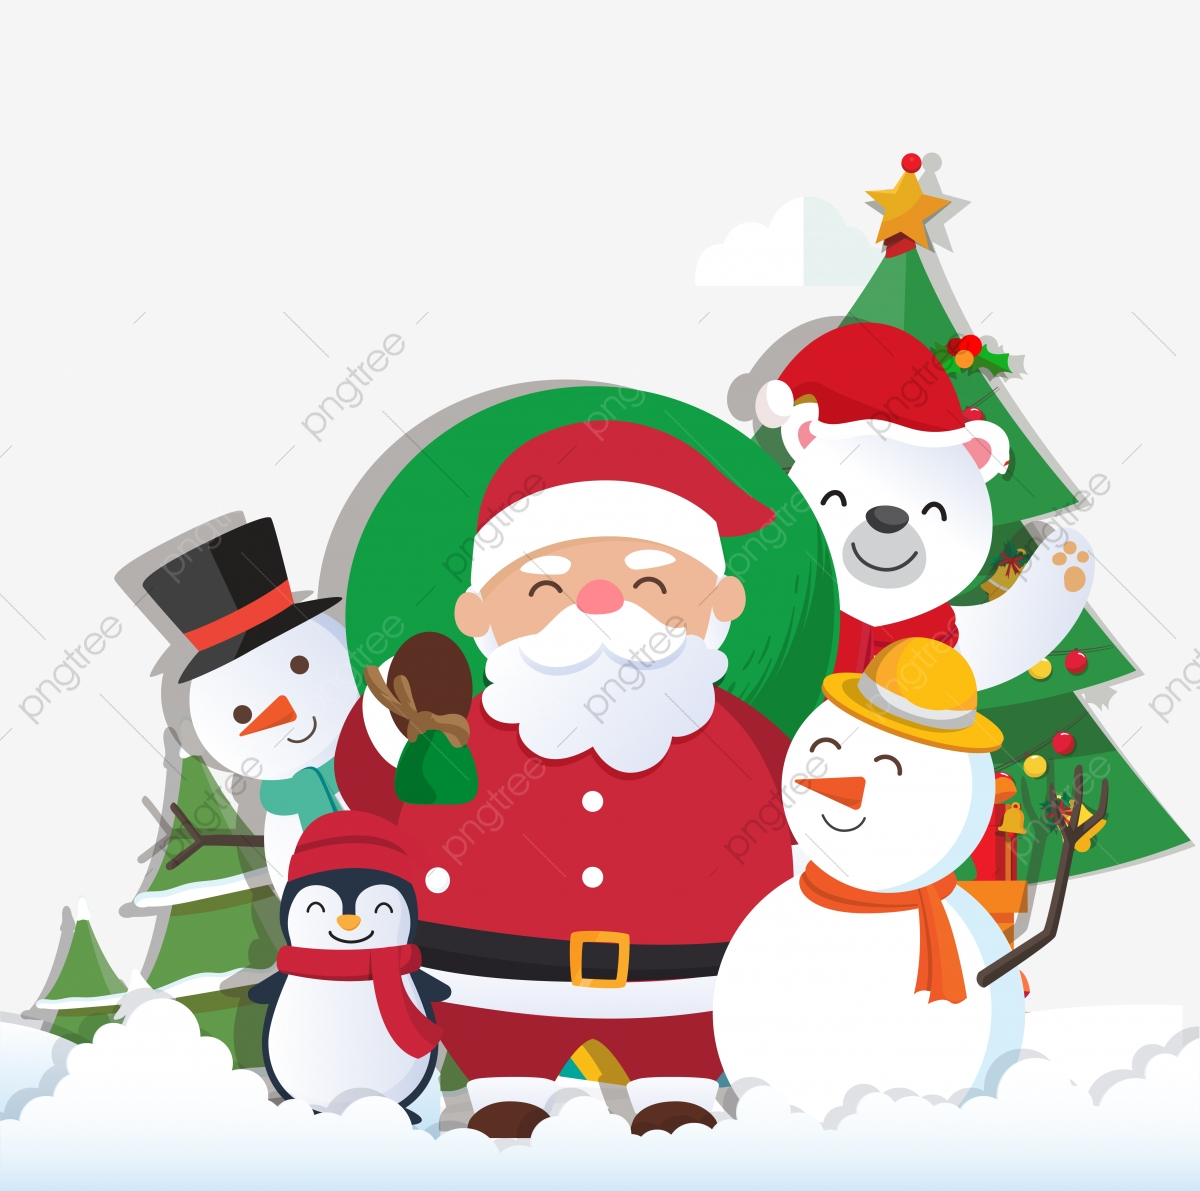 christmas background with santa claus and merry christmas christmas santa claus png and vector with transparent background for free download https pngtree com freepng christmas background with santa claus and merry christmas 3724399 html